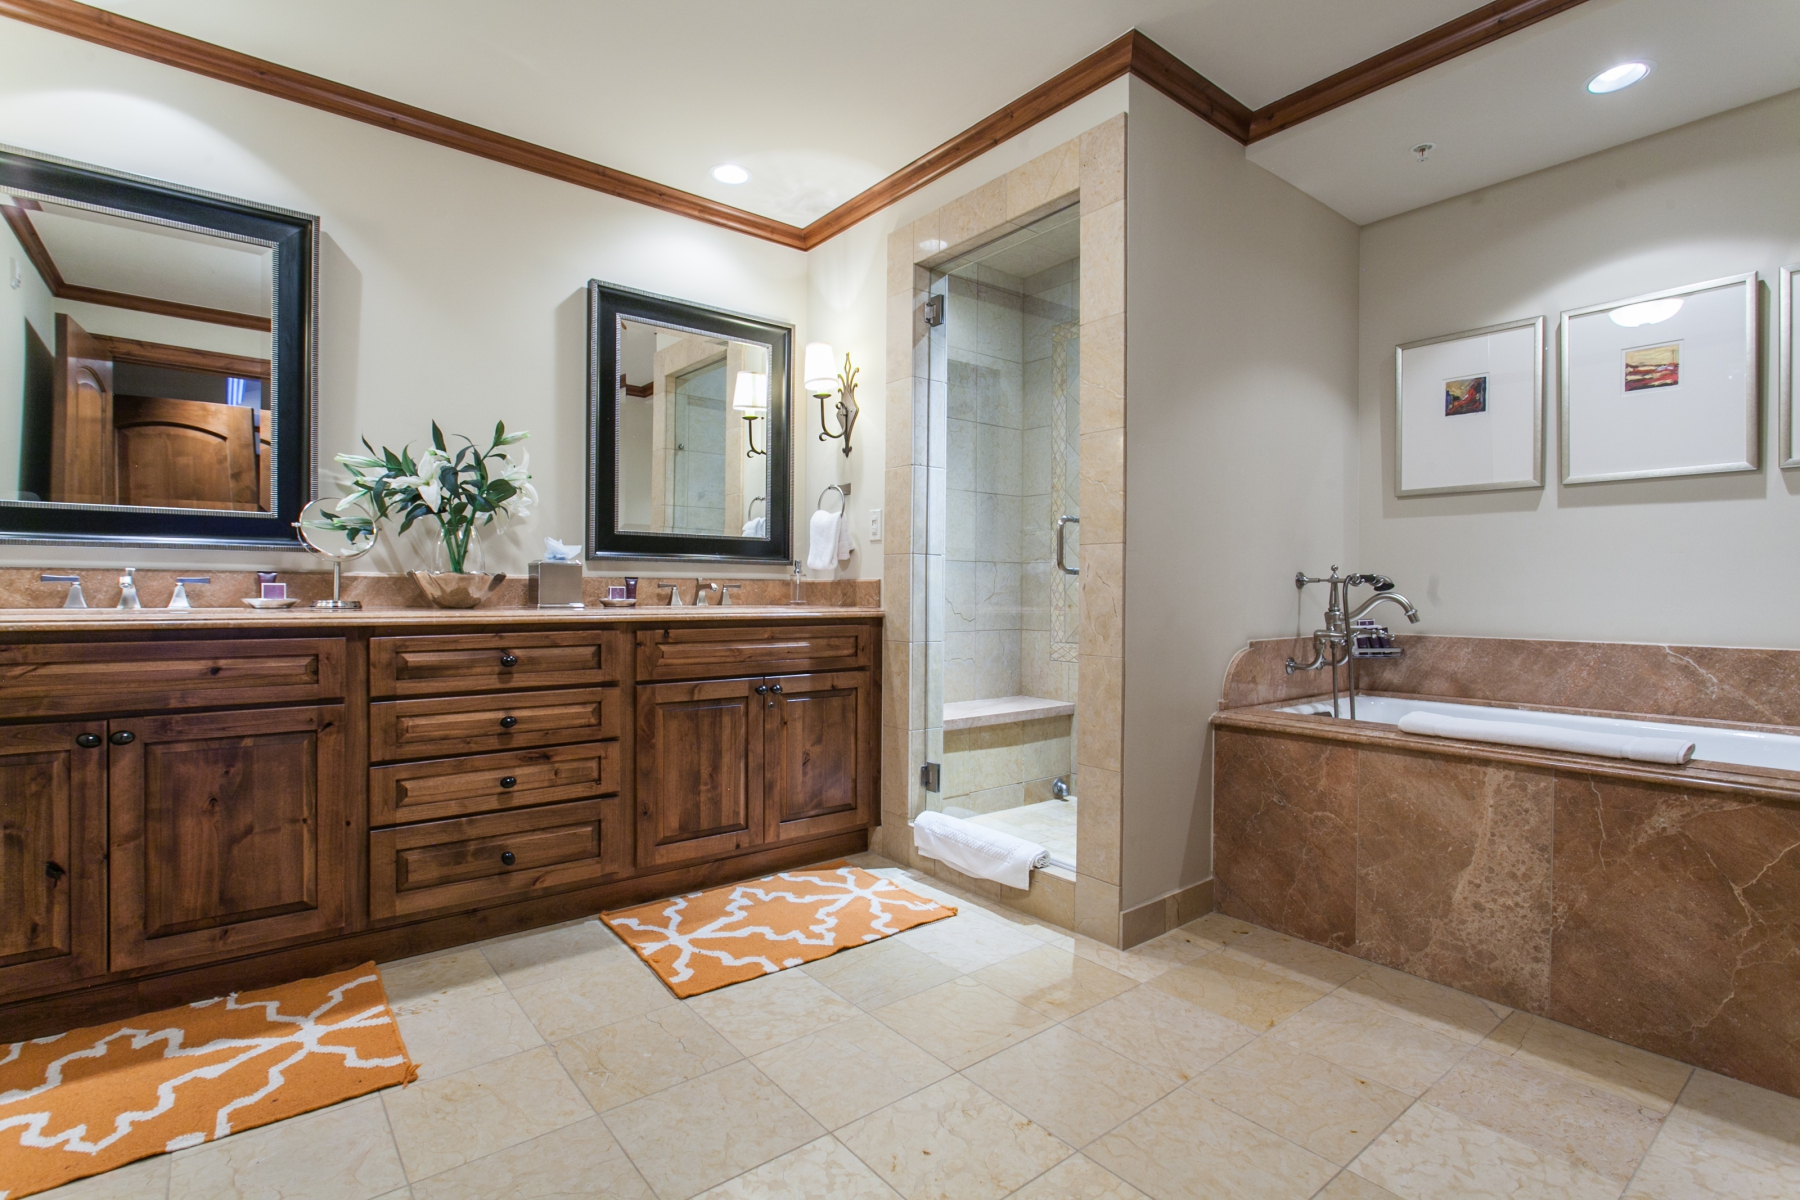 728 W Lionshead Cir 7 Vail Co 81657 For Sale